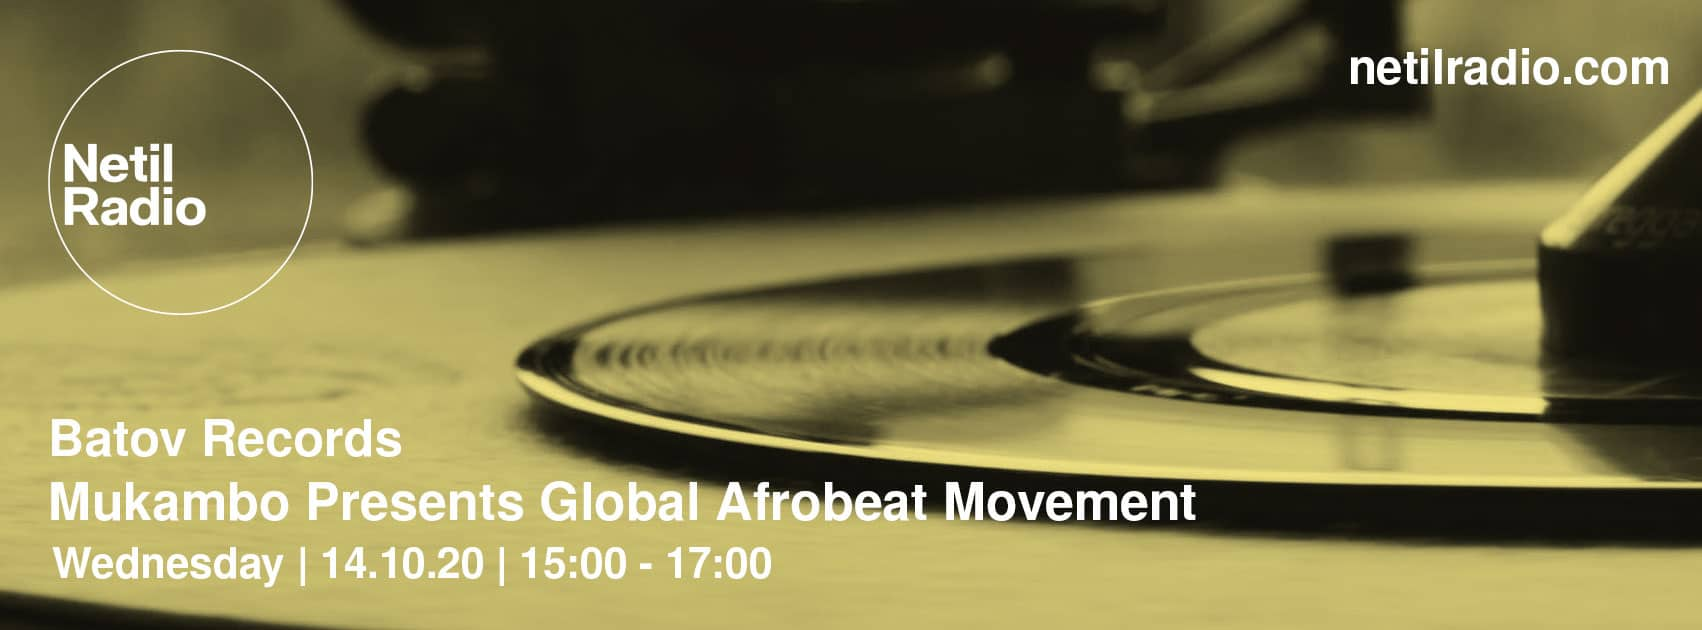 Mukambo Presents Global Afrobeat Movement